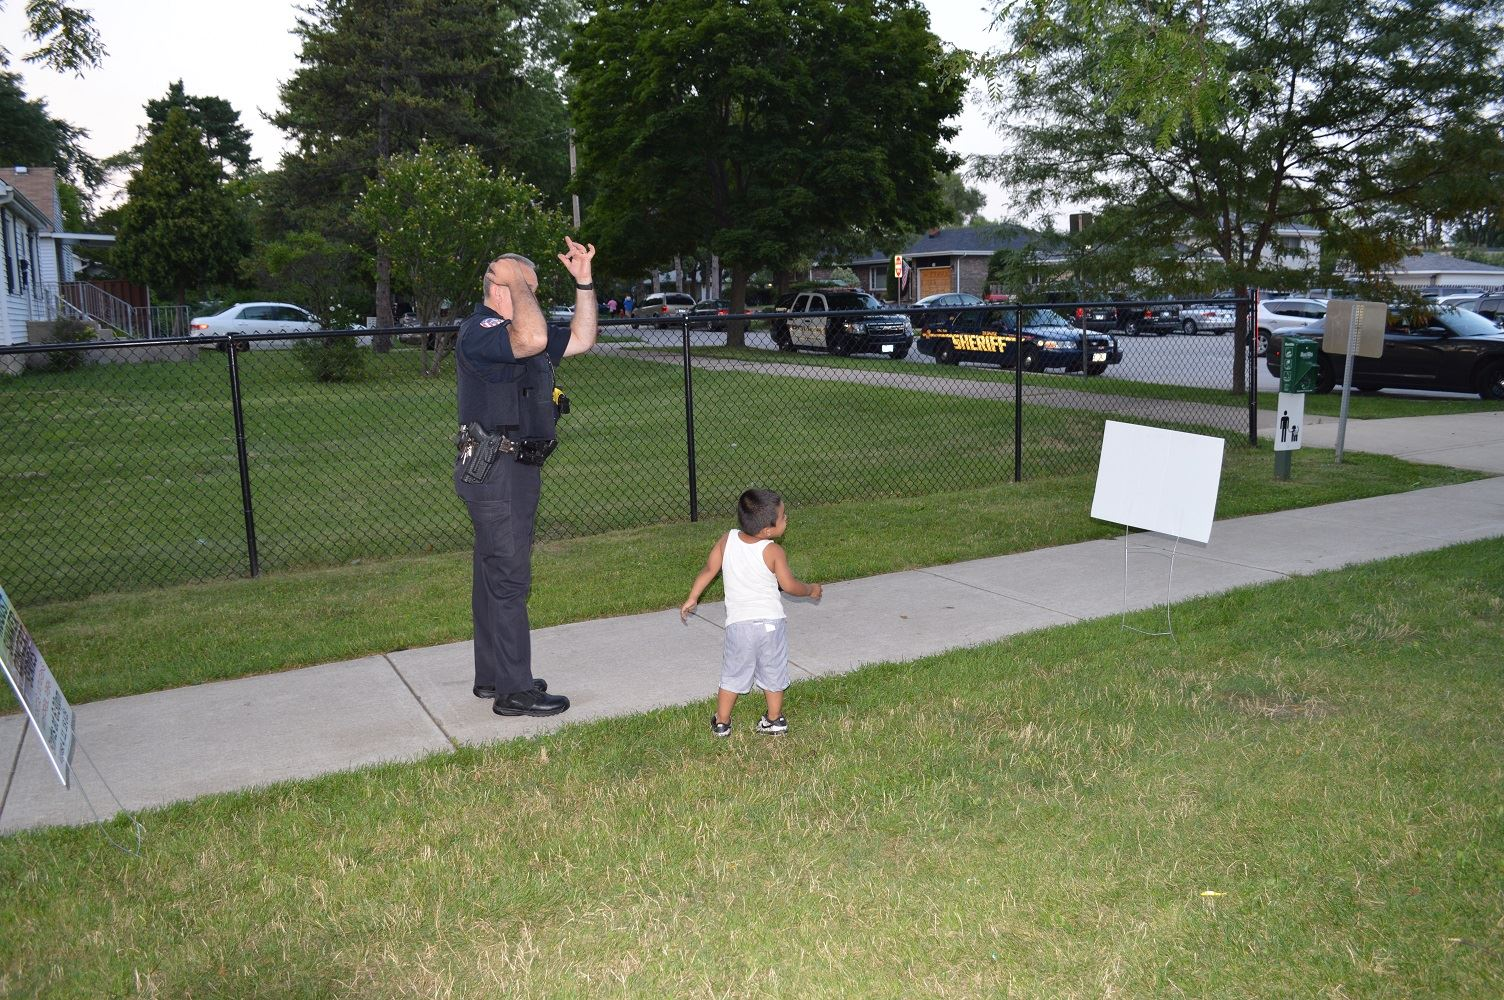 A Villa Park Police Officer plays with a young boy at a National Night Out event at the Iowa Community Center, Aug. 2.